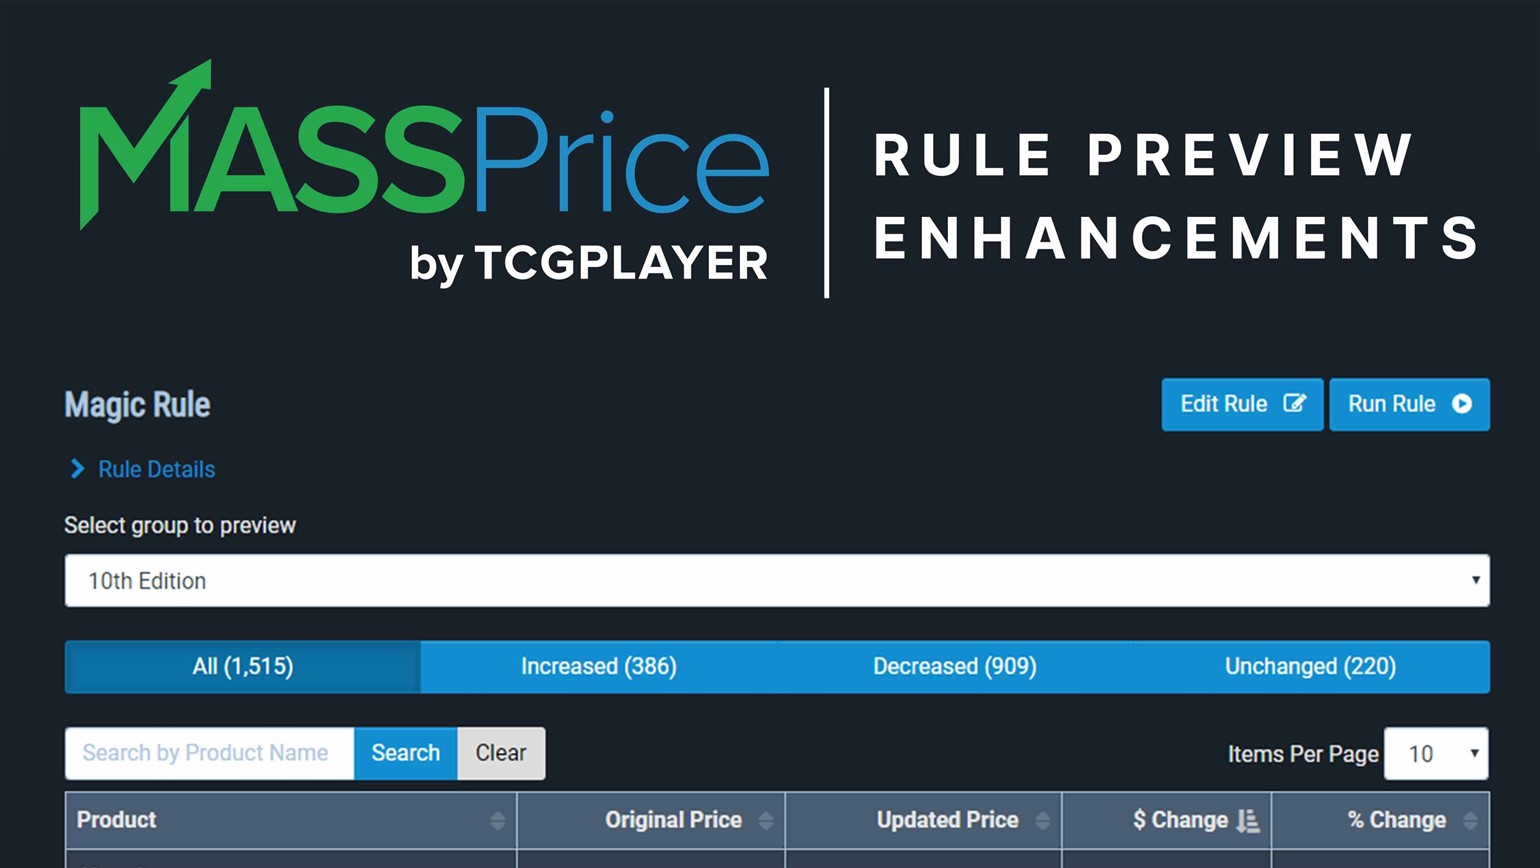 New MassPrice Updates Make Previewing Price Rules Even Easier